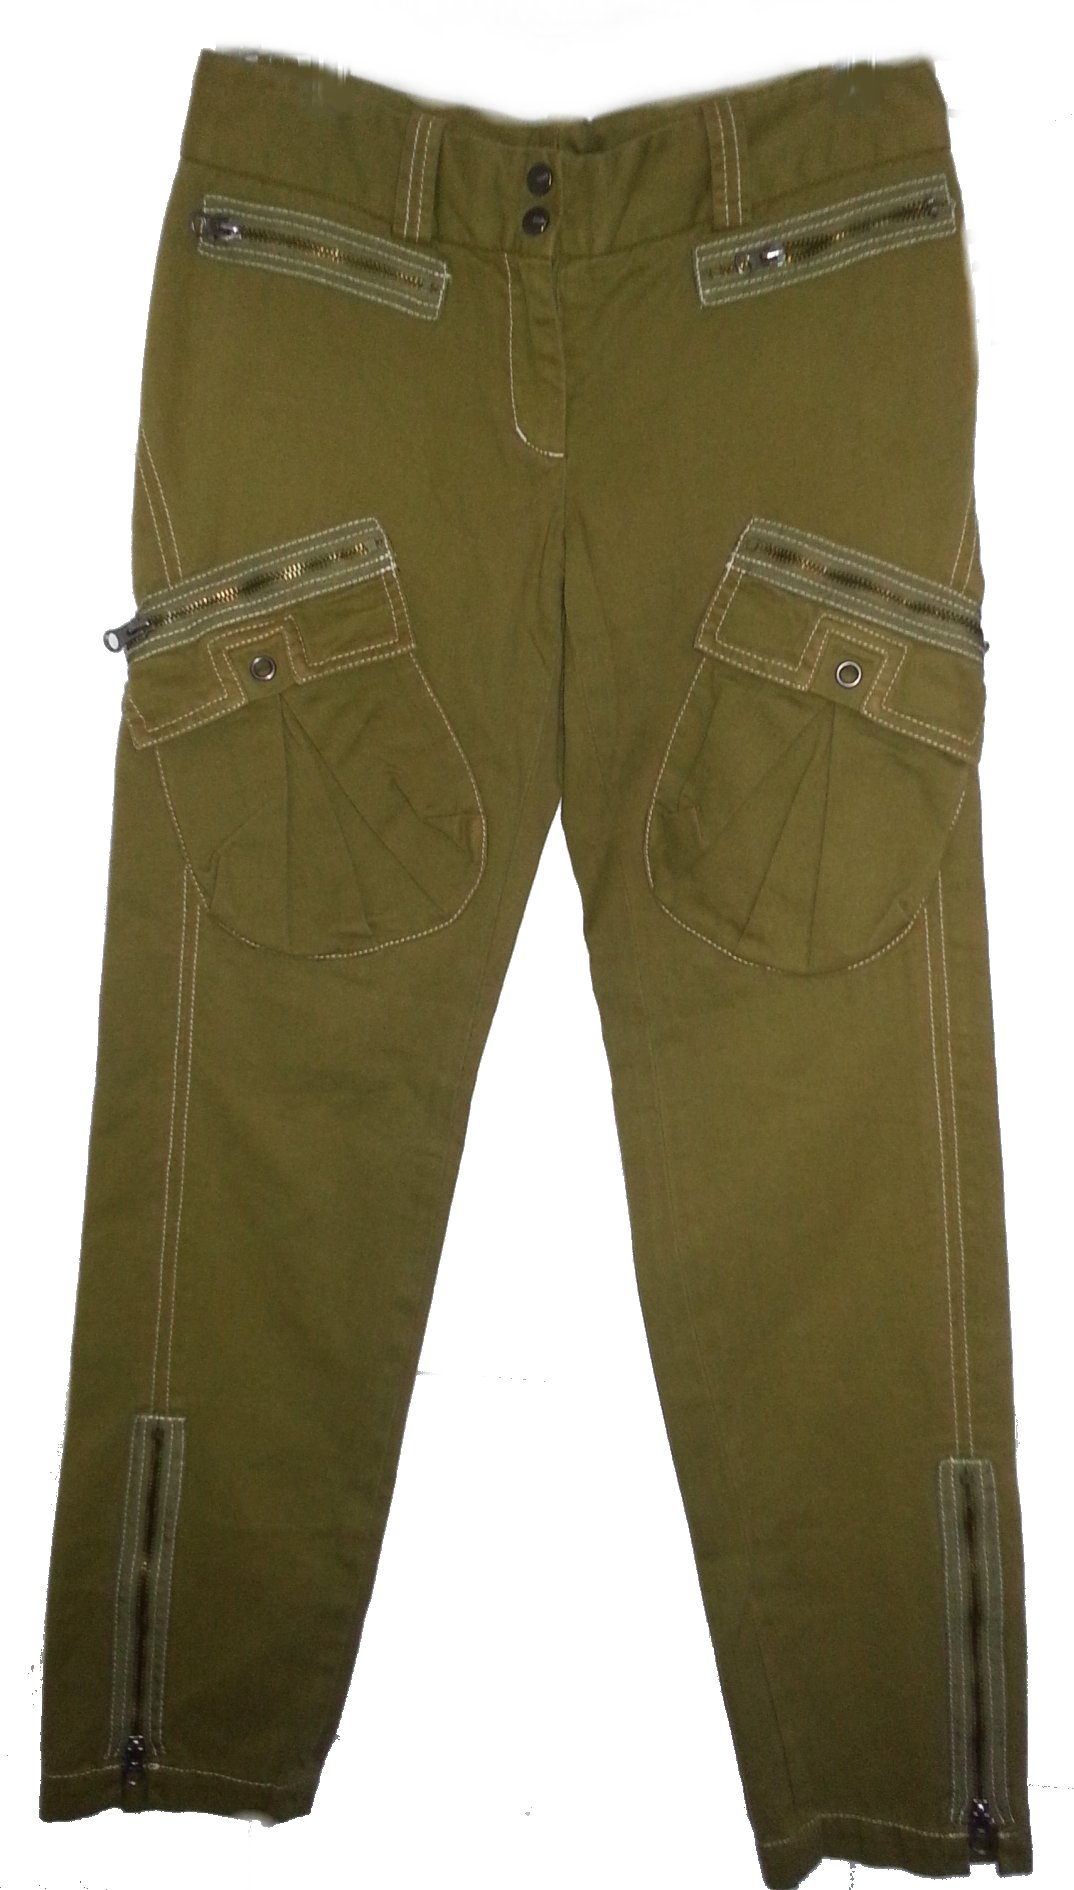 BCBG Max Azria Military Inspired Skinny Ankle Pants - 2